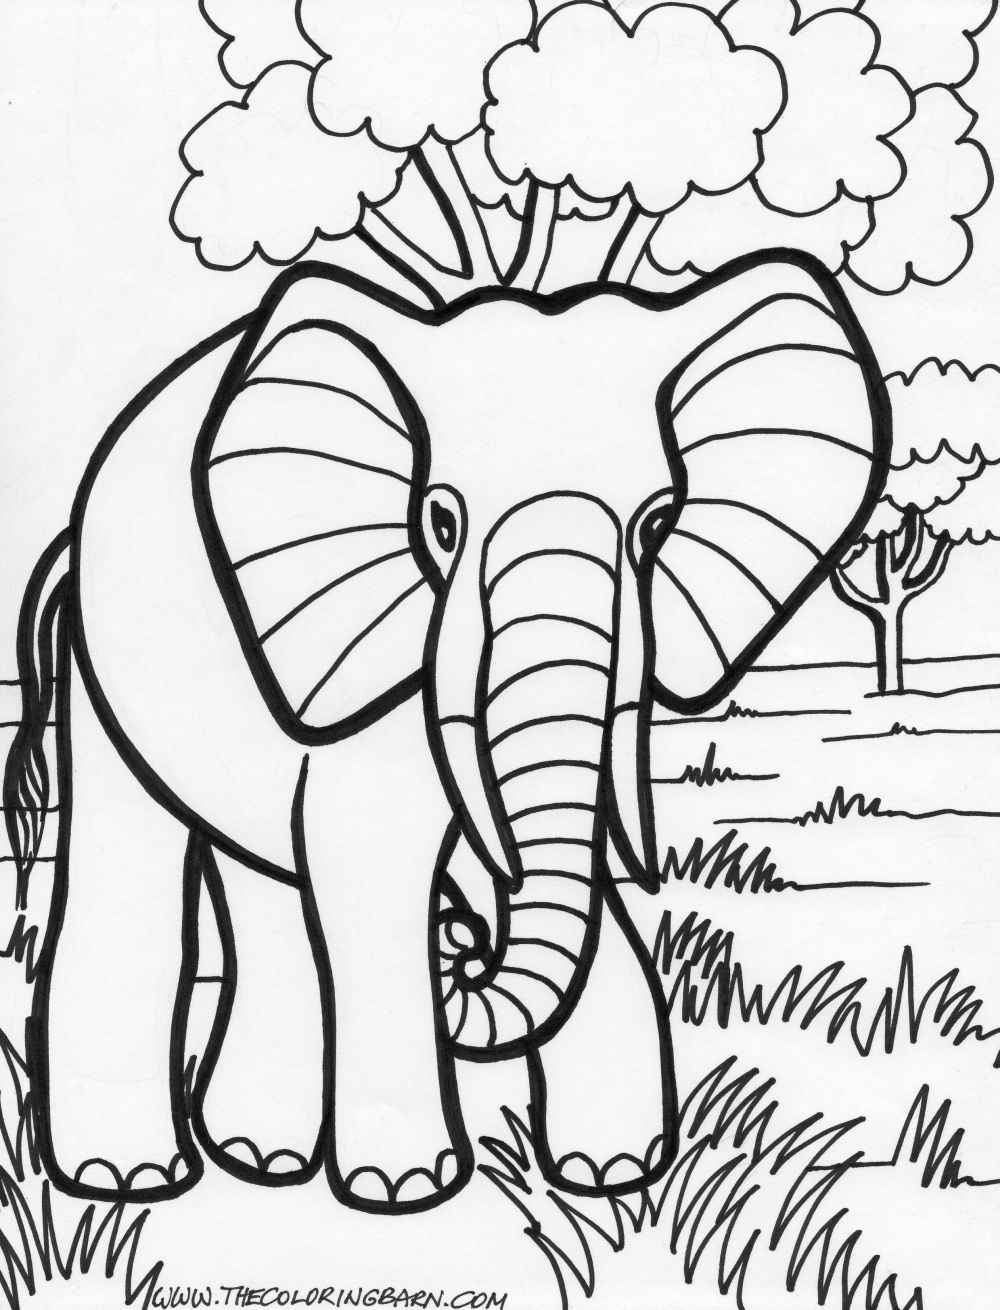 elephants coloring pages print download teaching kids through elephant coloring pages coloring elephants